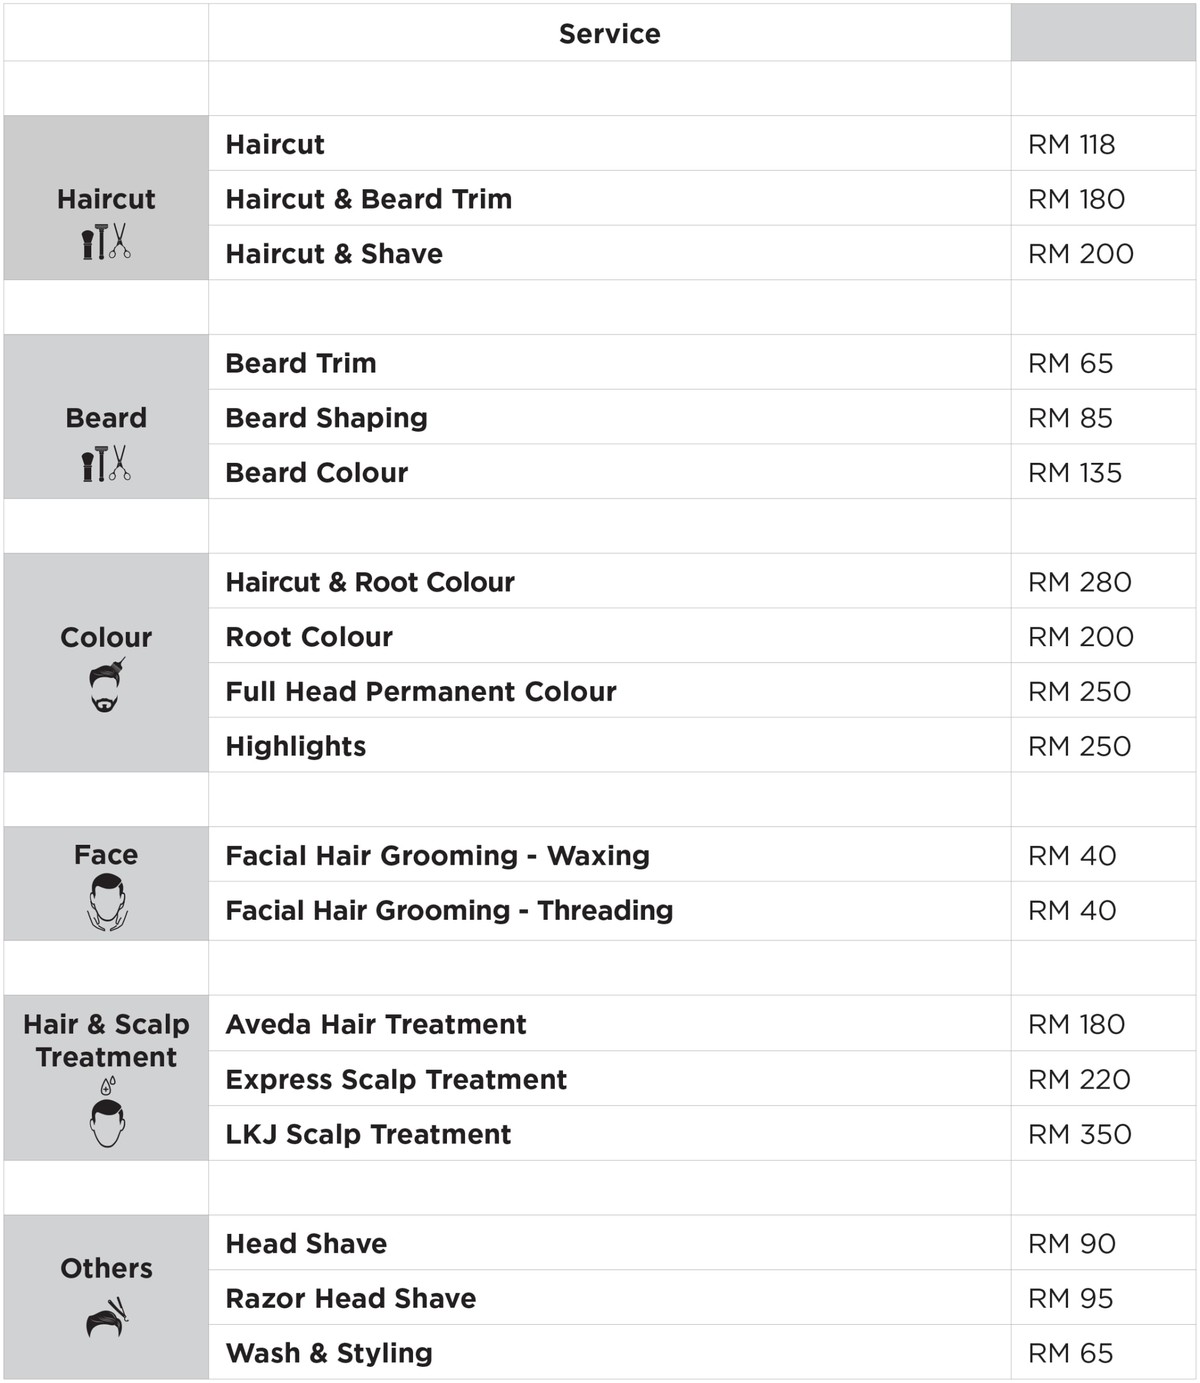 Pricing Leekaja Beauty Salon Malaysia 이가자 뷰티 Best